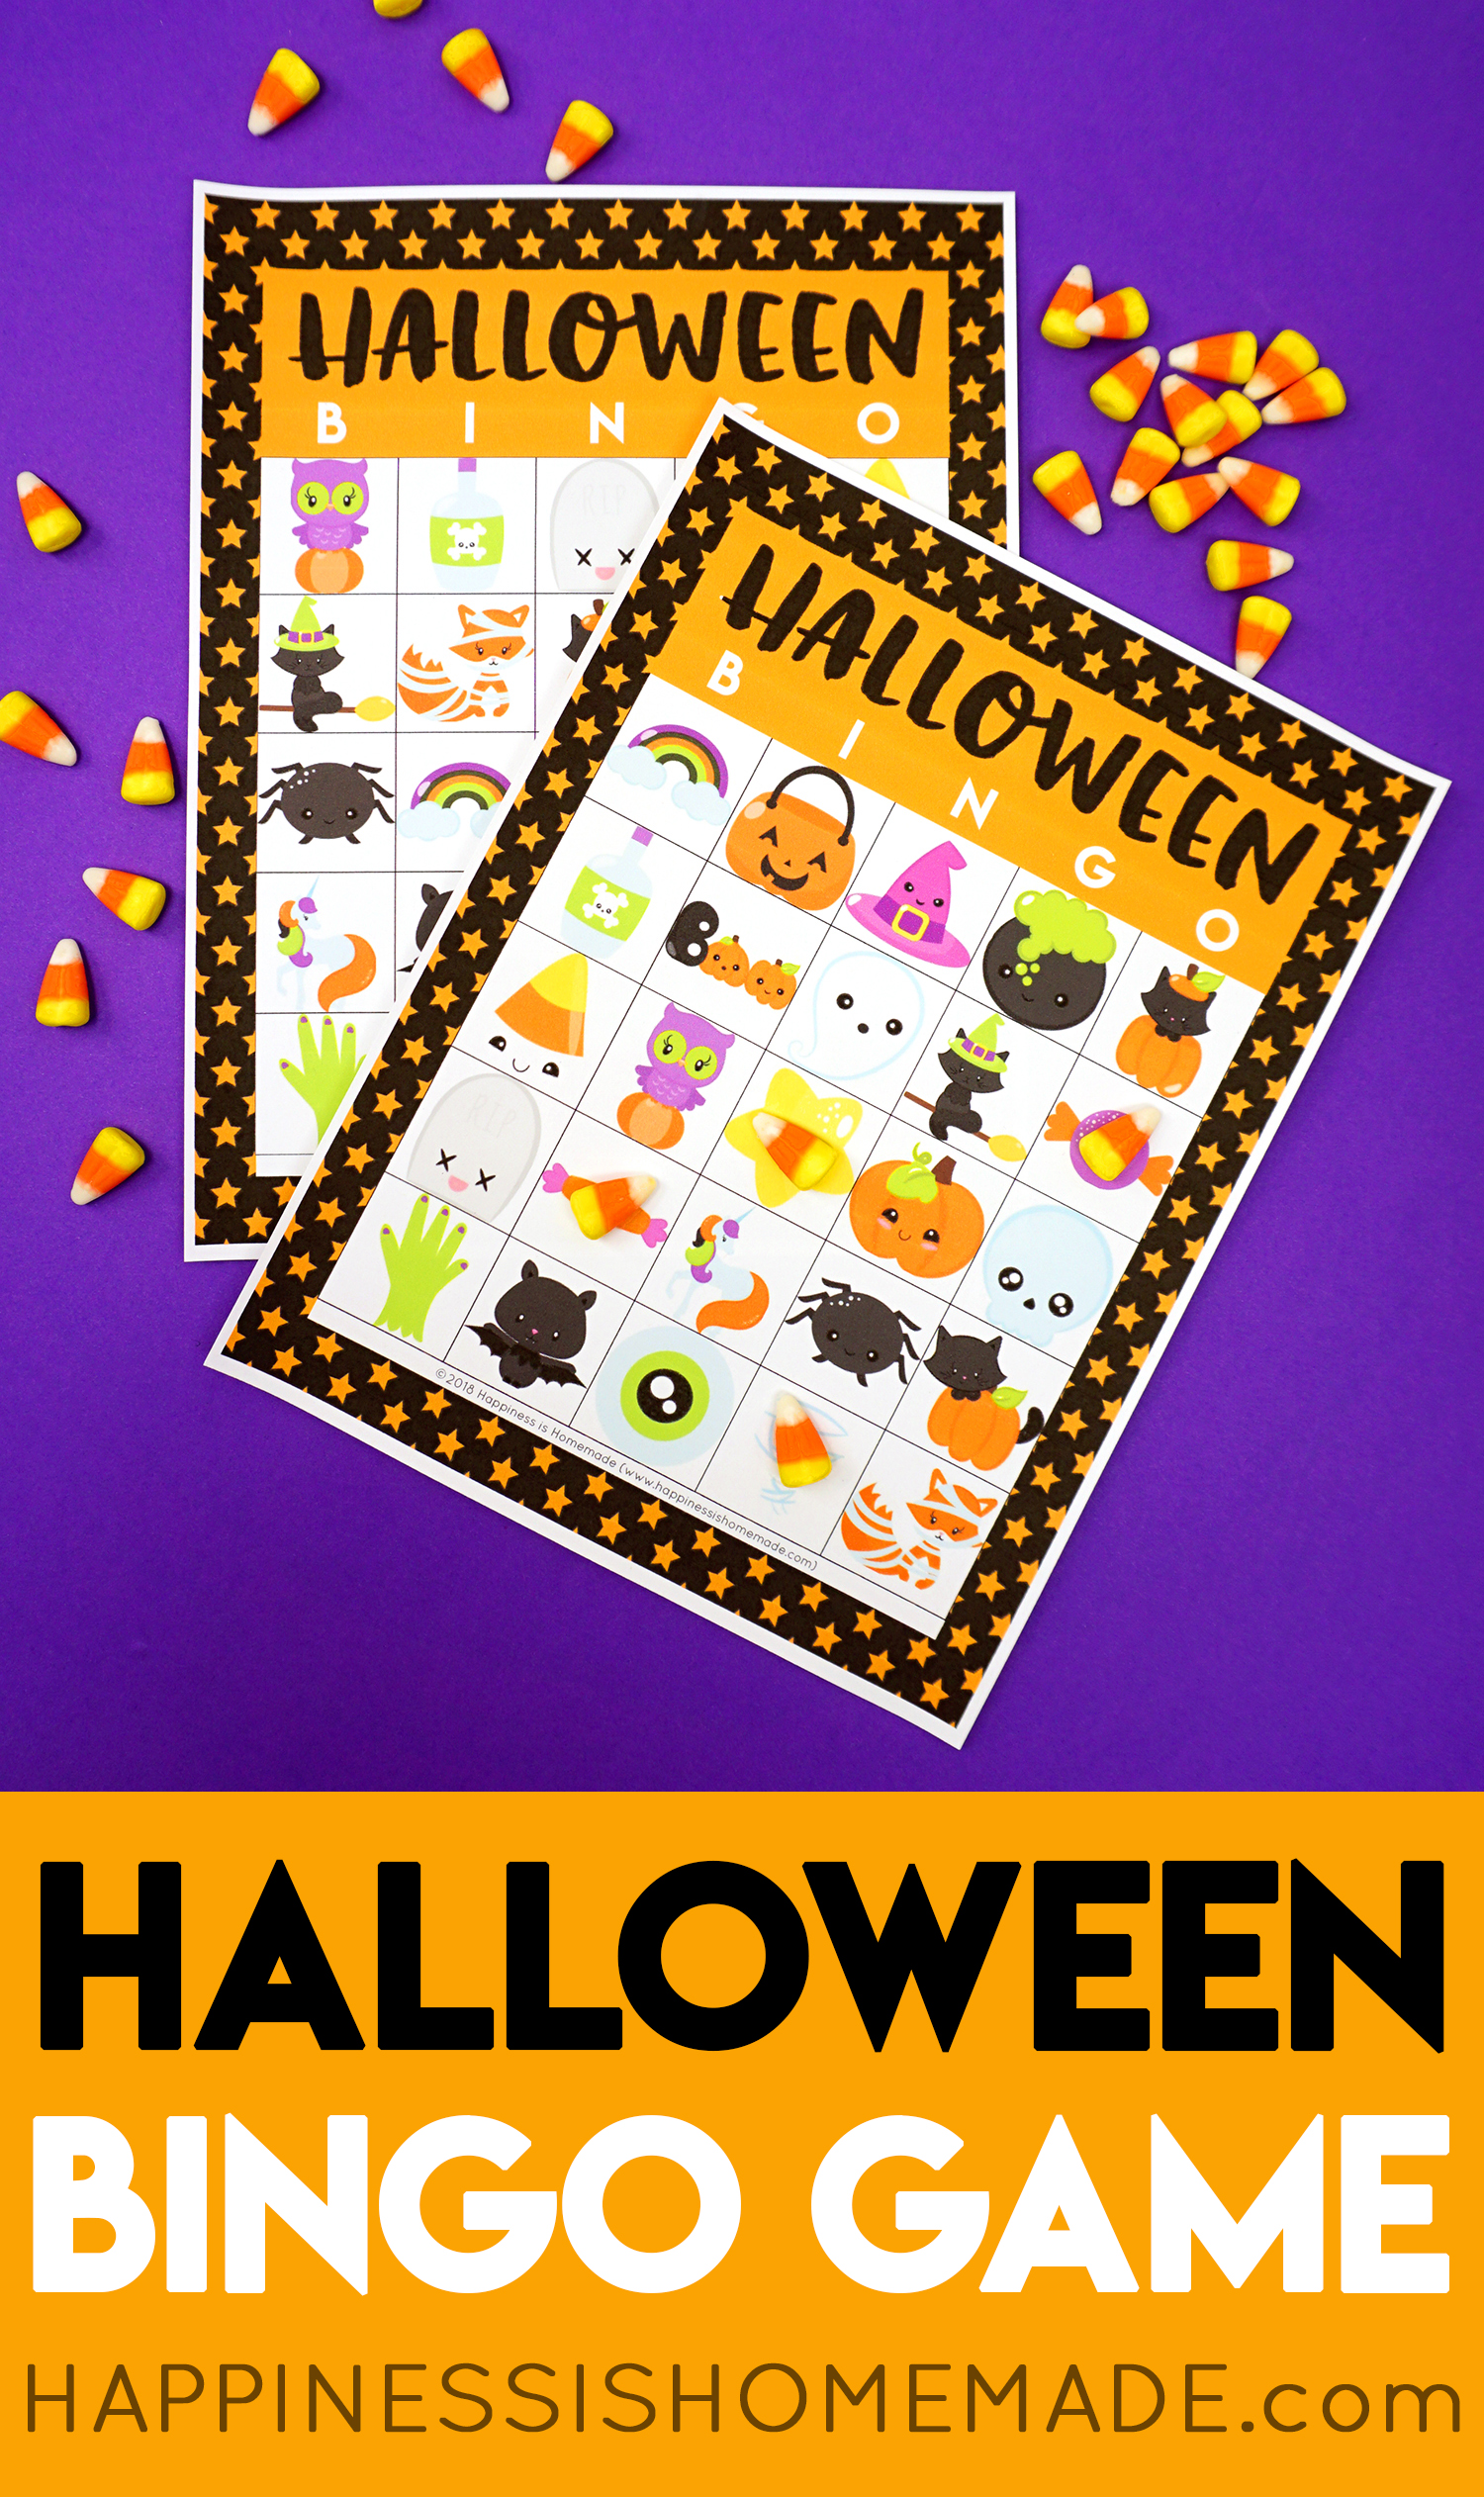 photograph relating to Printable Halloween Bingo Card named Printable Halloween Bingo Playing cards - Joy is Handmade